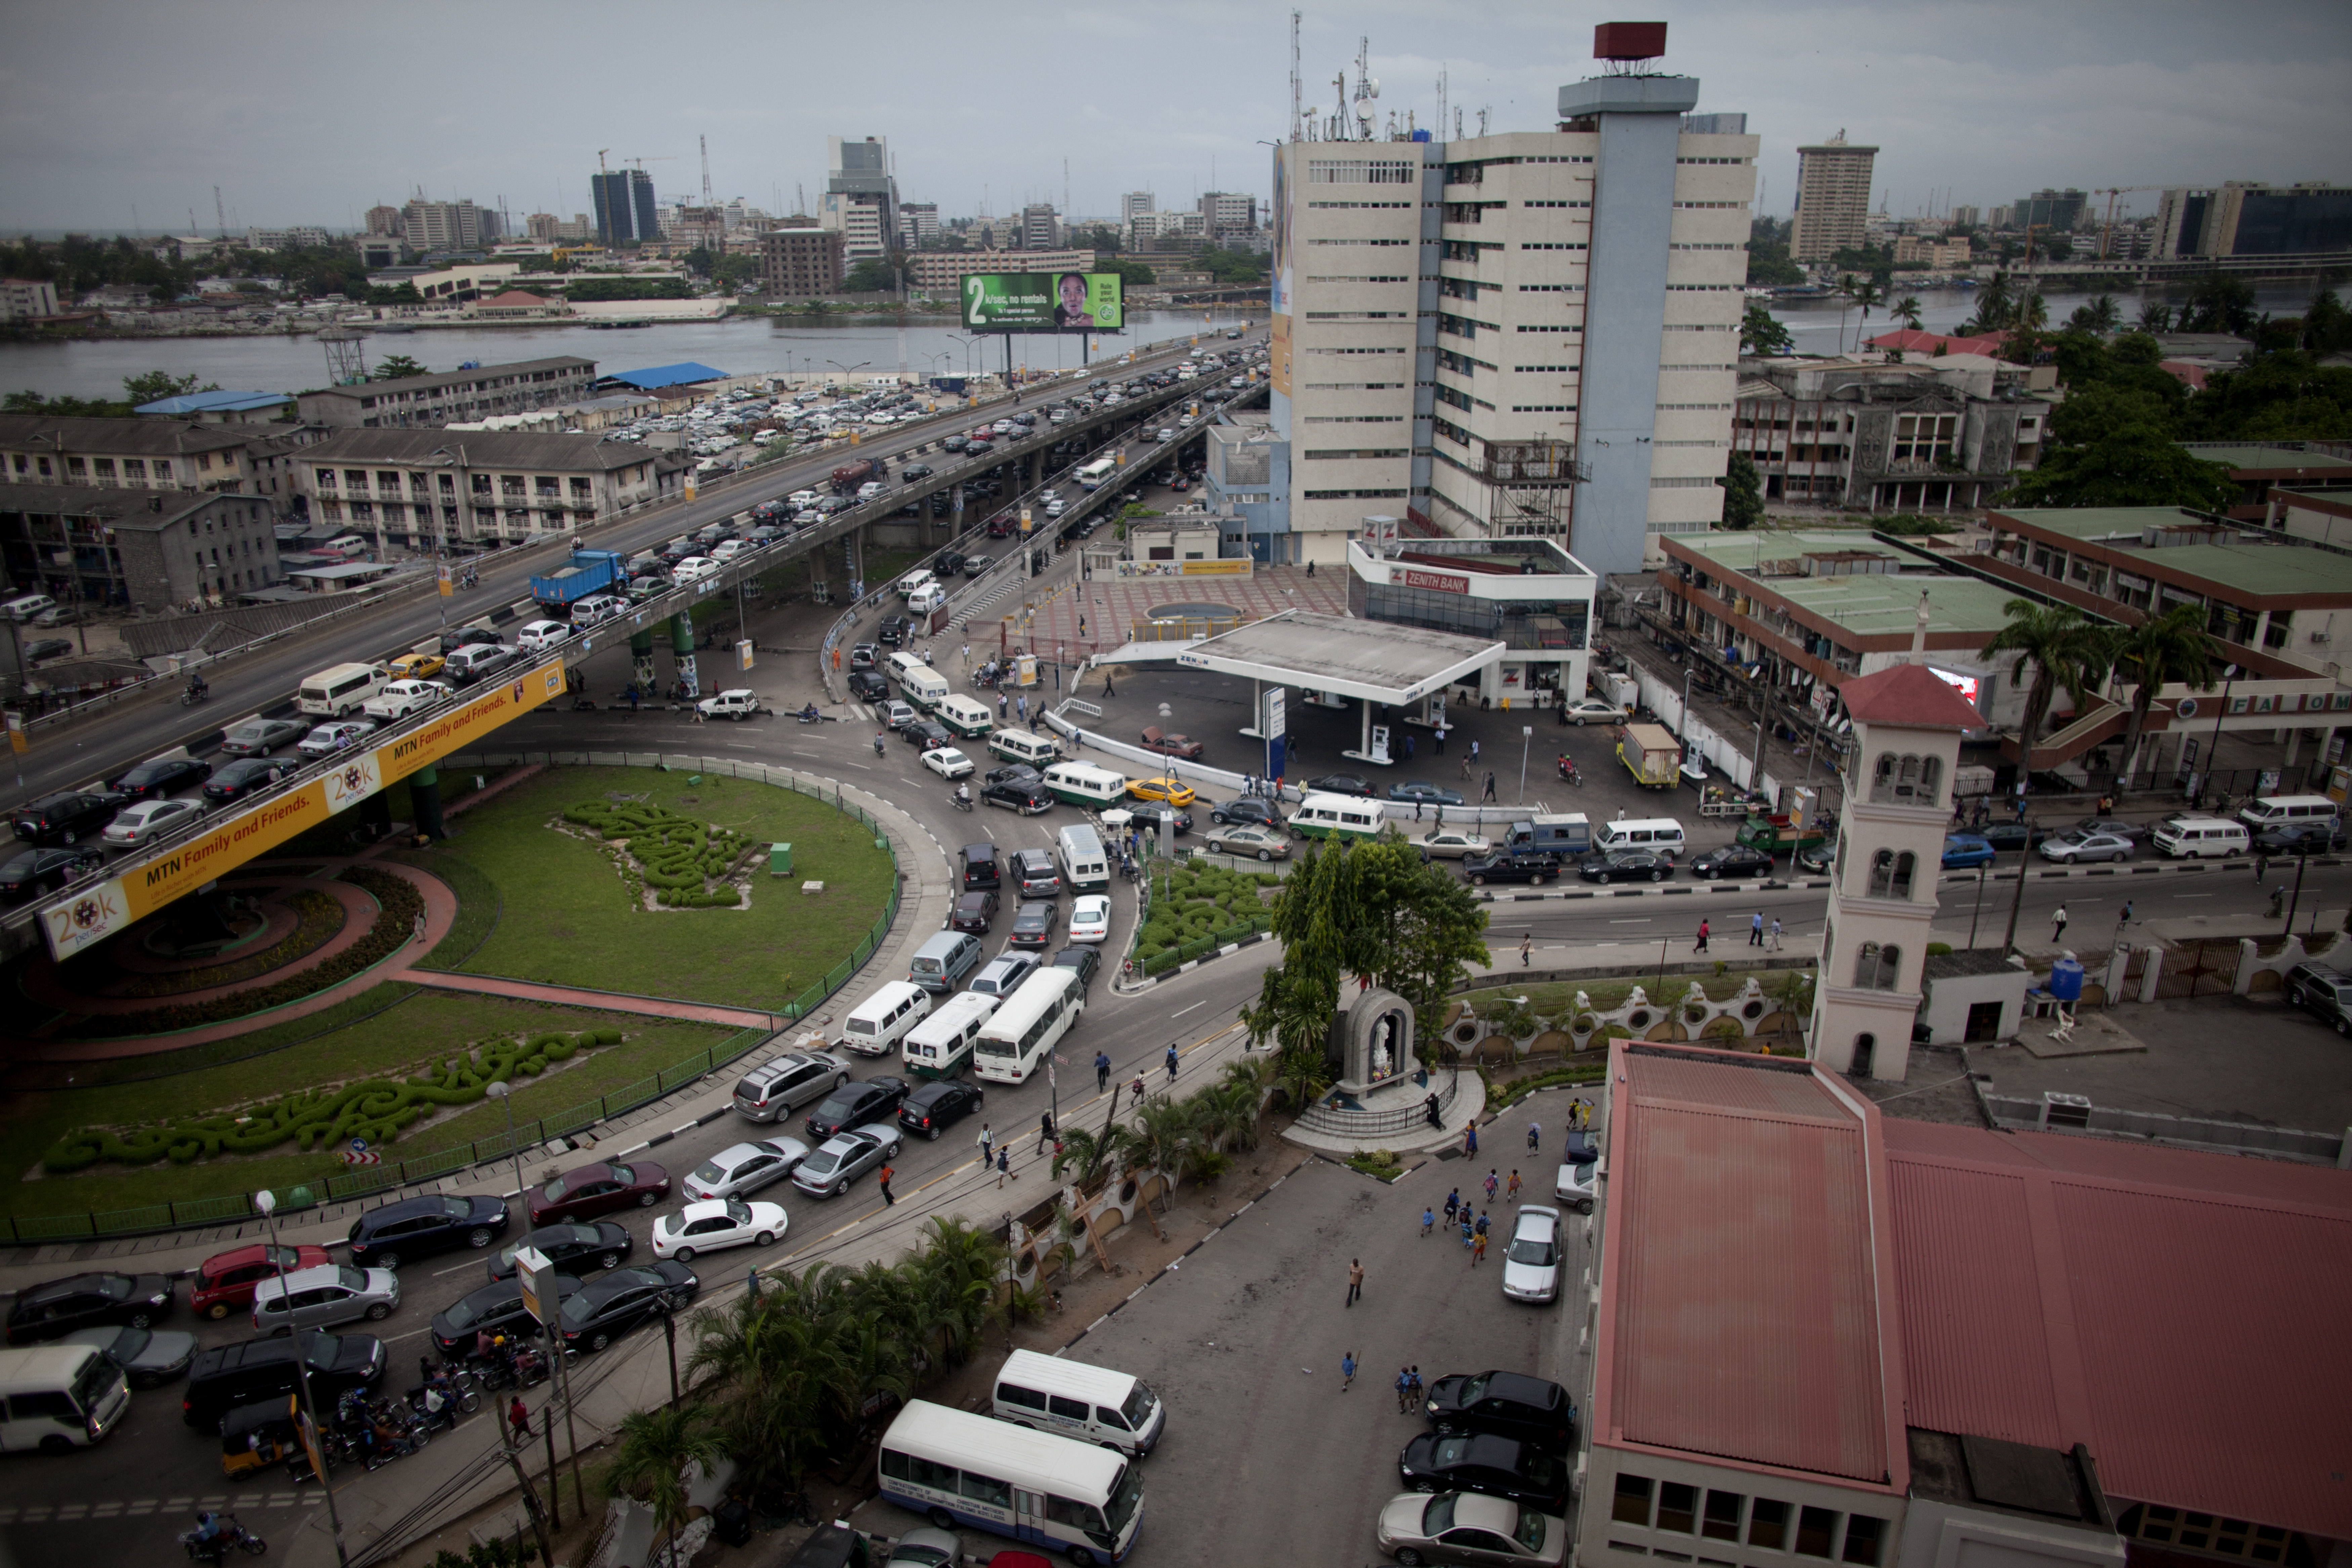 Lagos is home to over 10 million people, making traffic a major problem but measures are being taken to improve it. Photo © Jane Hahn/Corbis